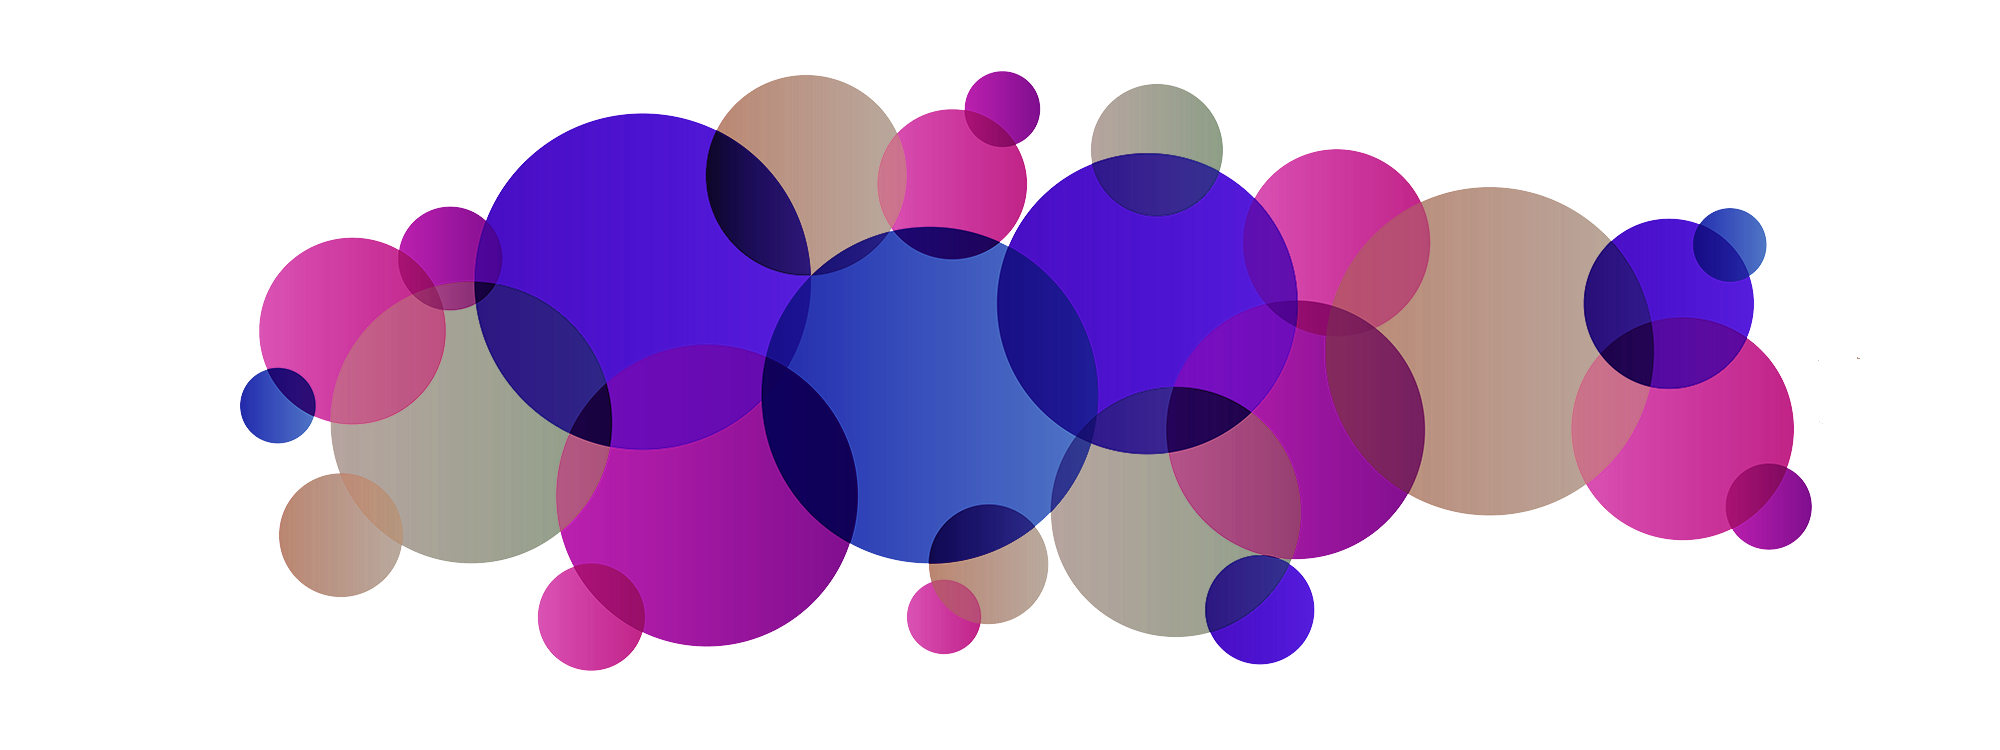 Group of circles overlapping each other